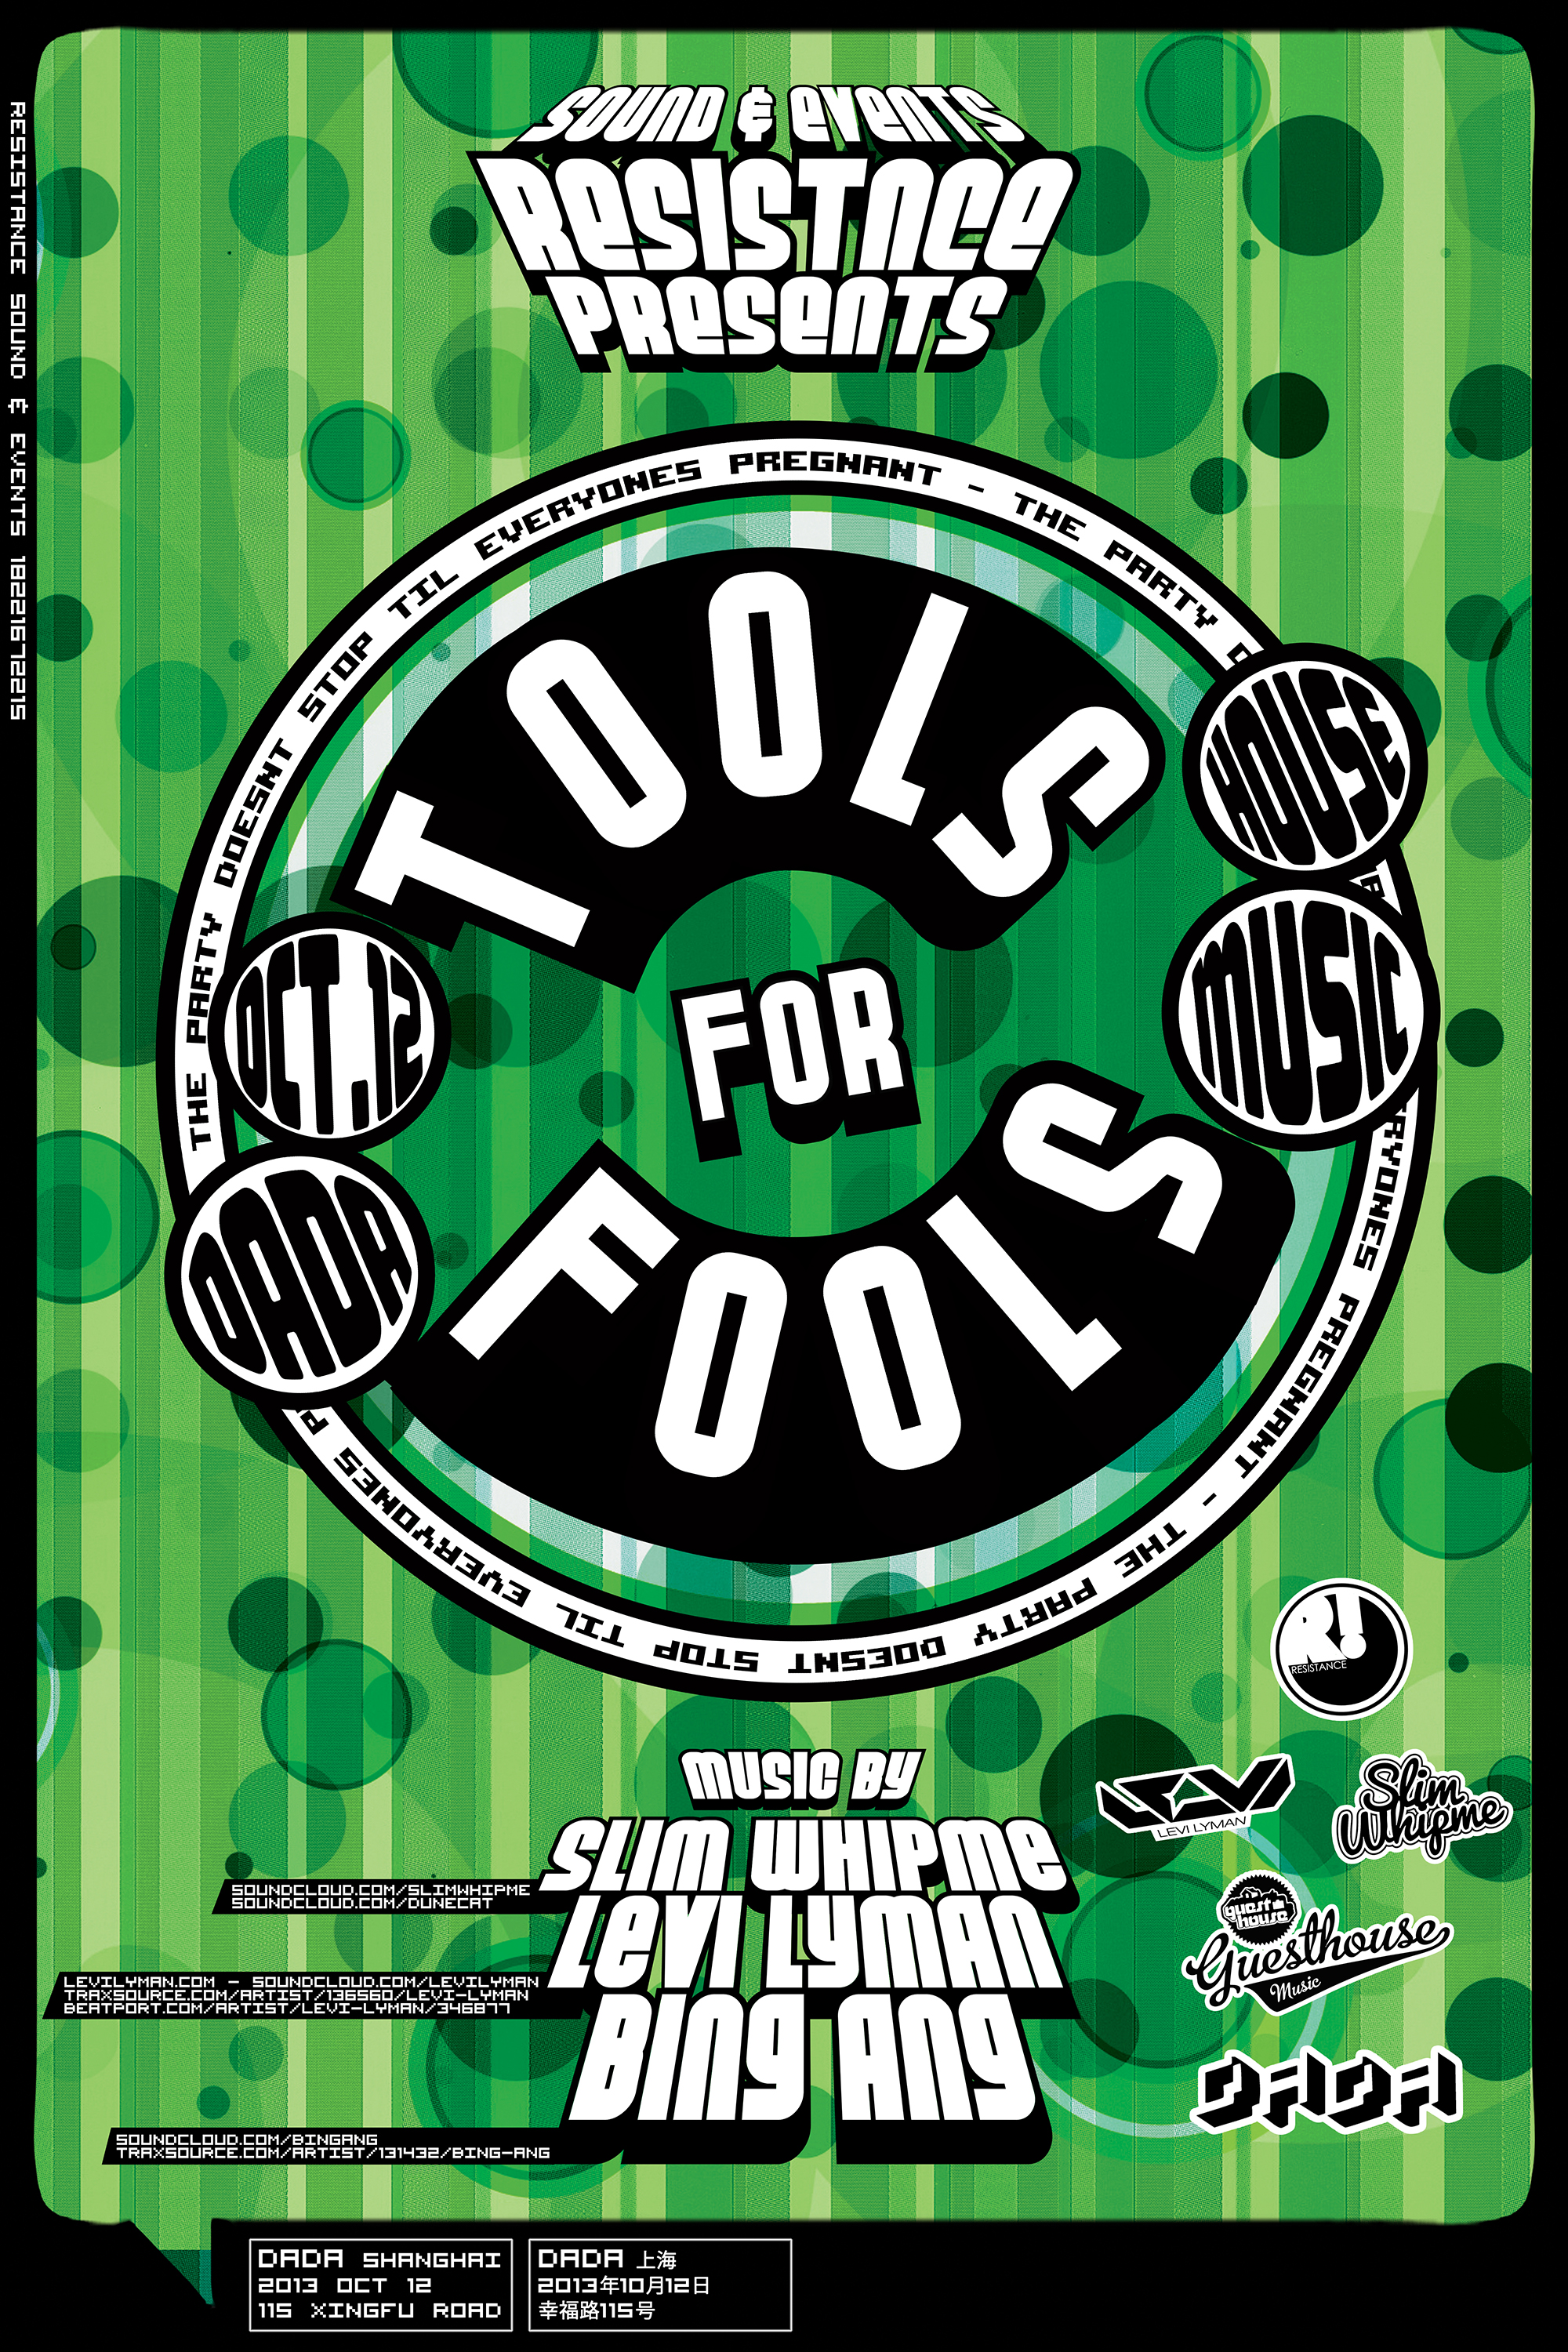 tools_for_fools_20131012_poster_final_420x600mm_smallsize.jpg